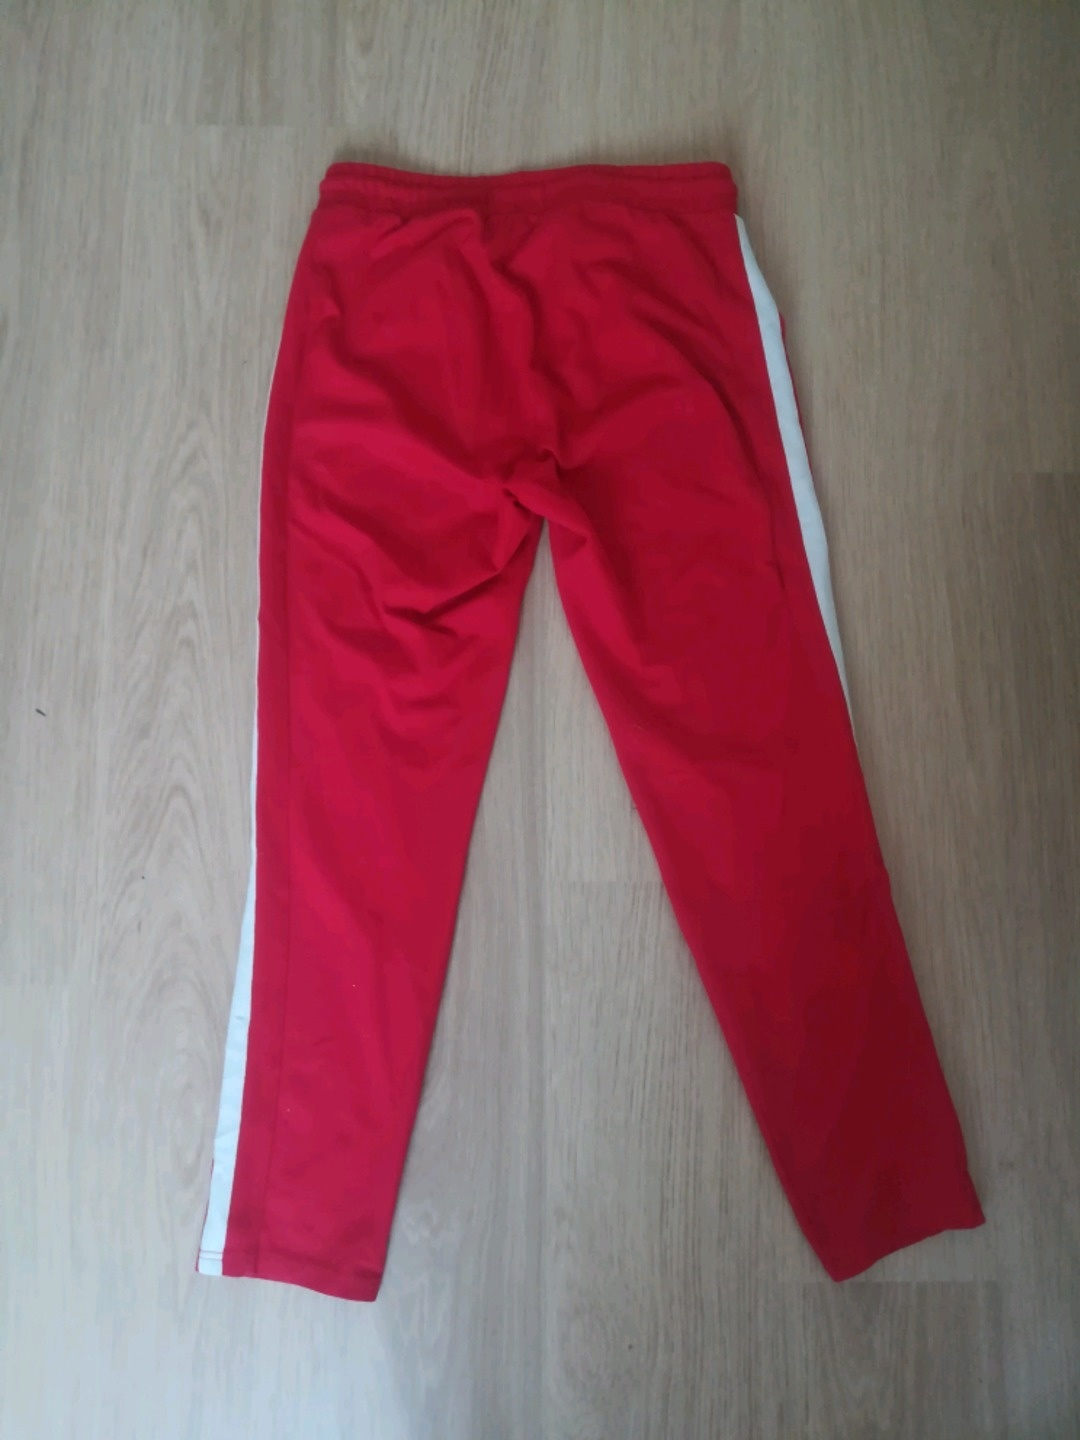 Women's trousers & jeans - RESERVED photo 4